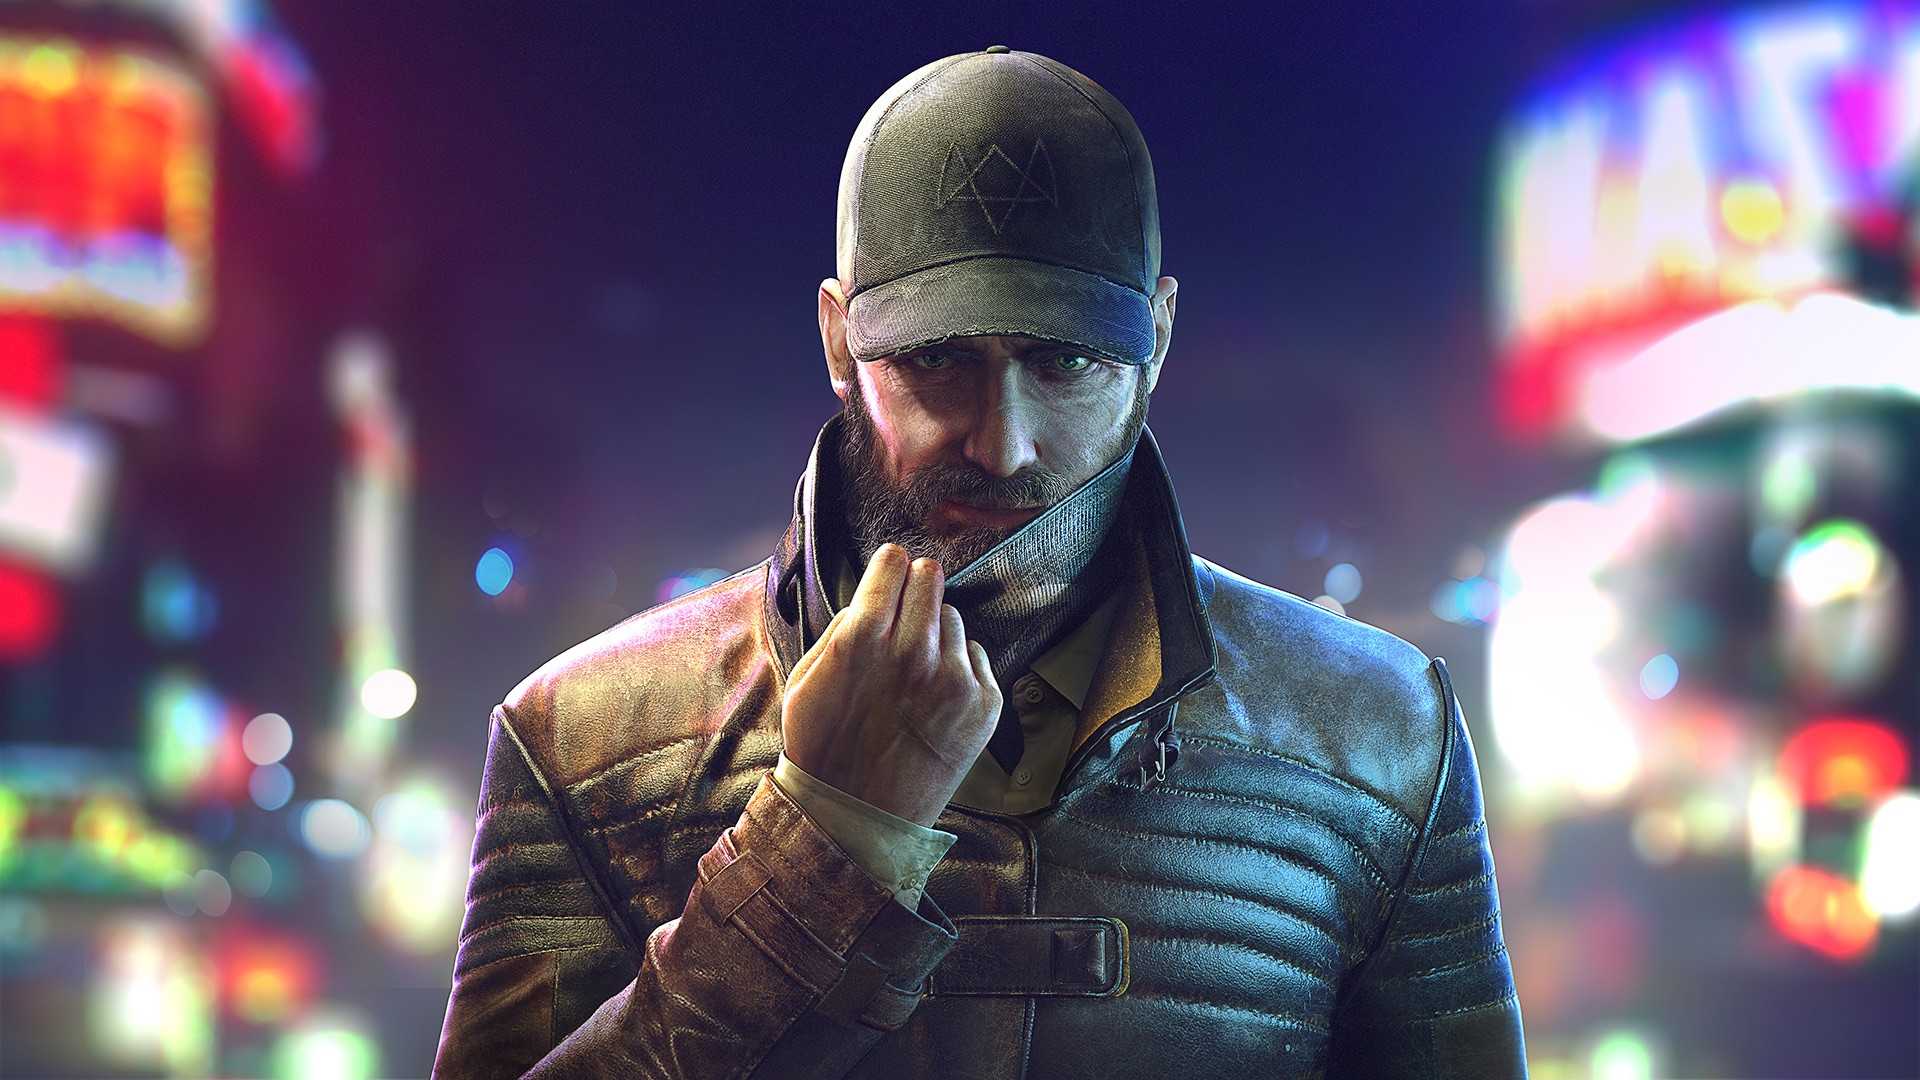 Watch Dogs Legion - Эйден Пирс